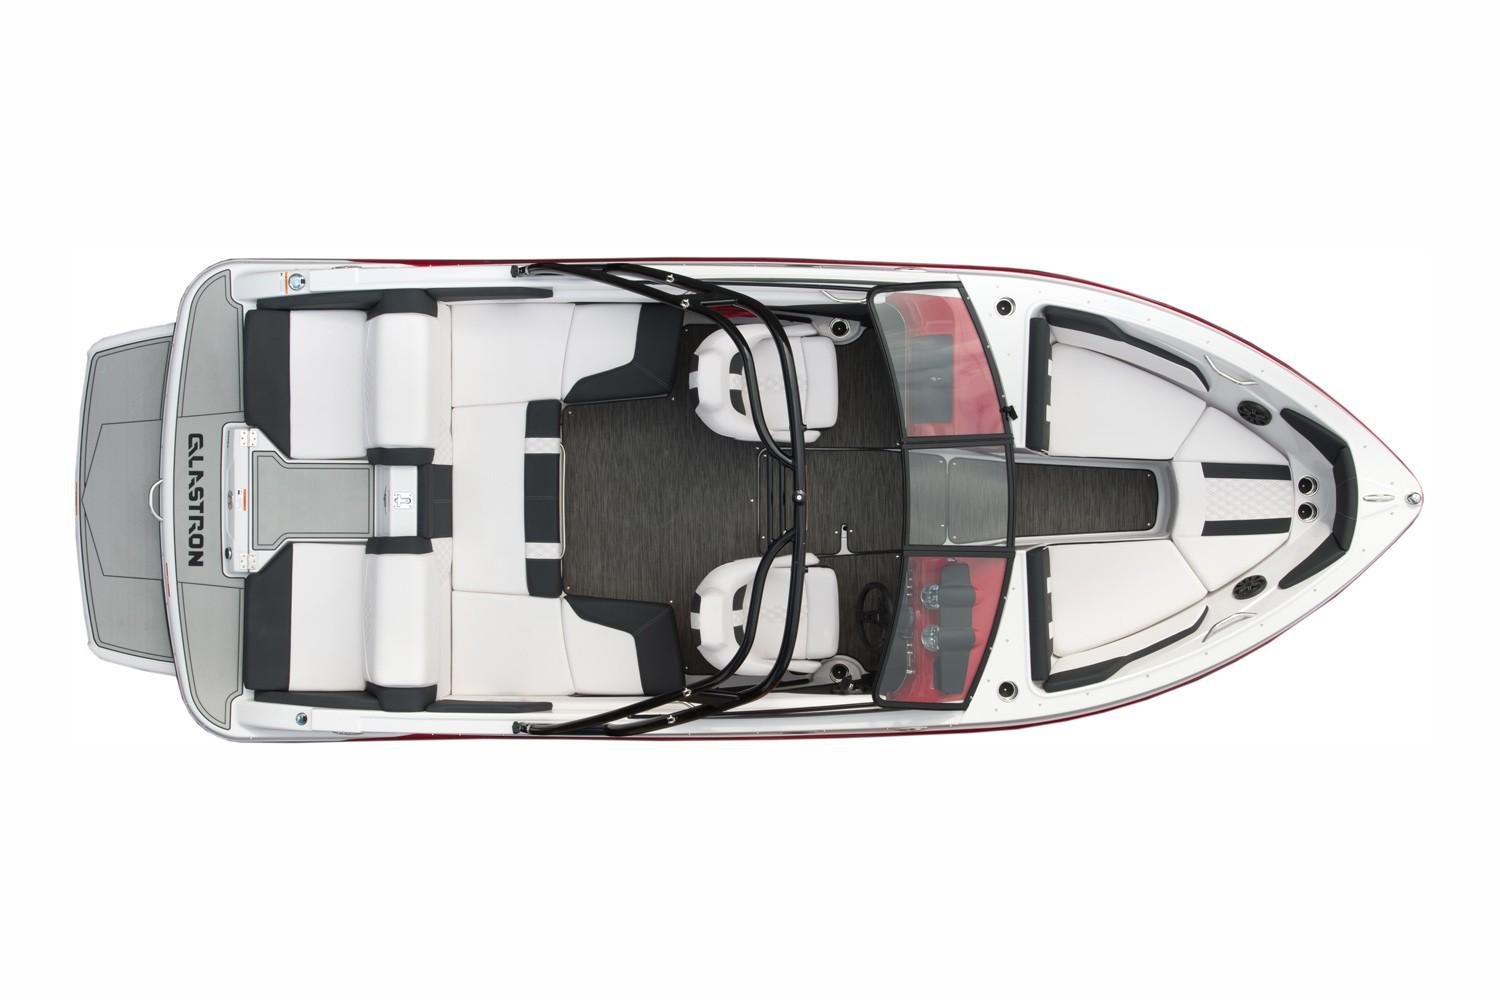 New 2018 Glastron GT 207 Power Boats Inboard in Speculator, NY